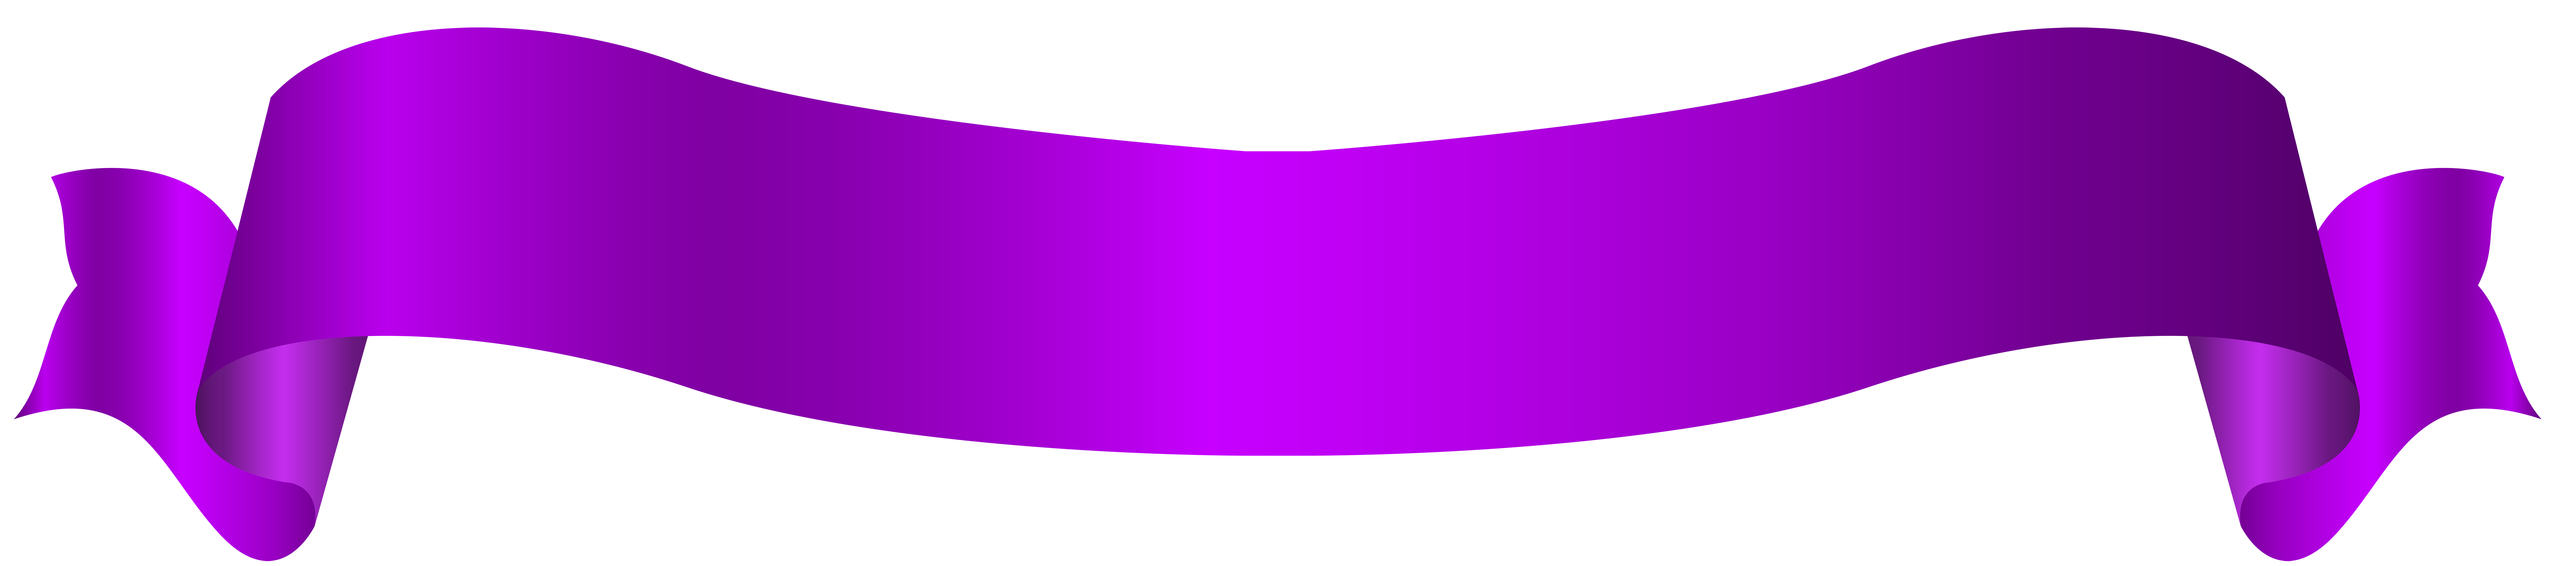 Banner png gallery yopriceville. Youtube clipart purple